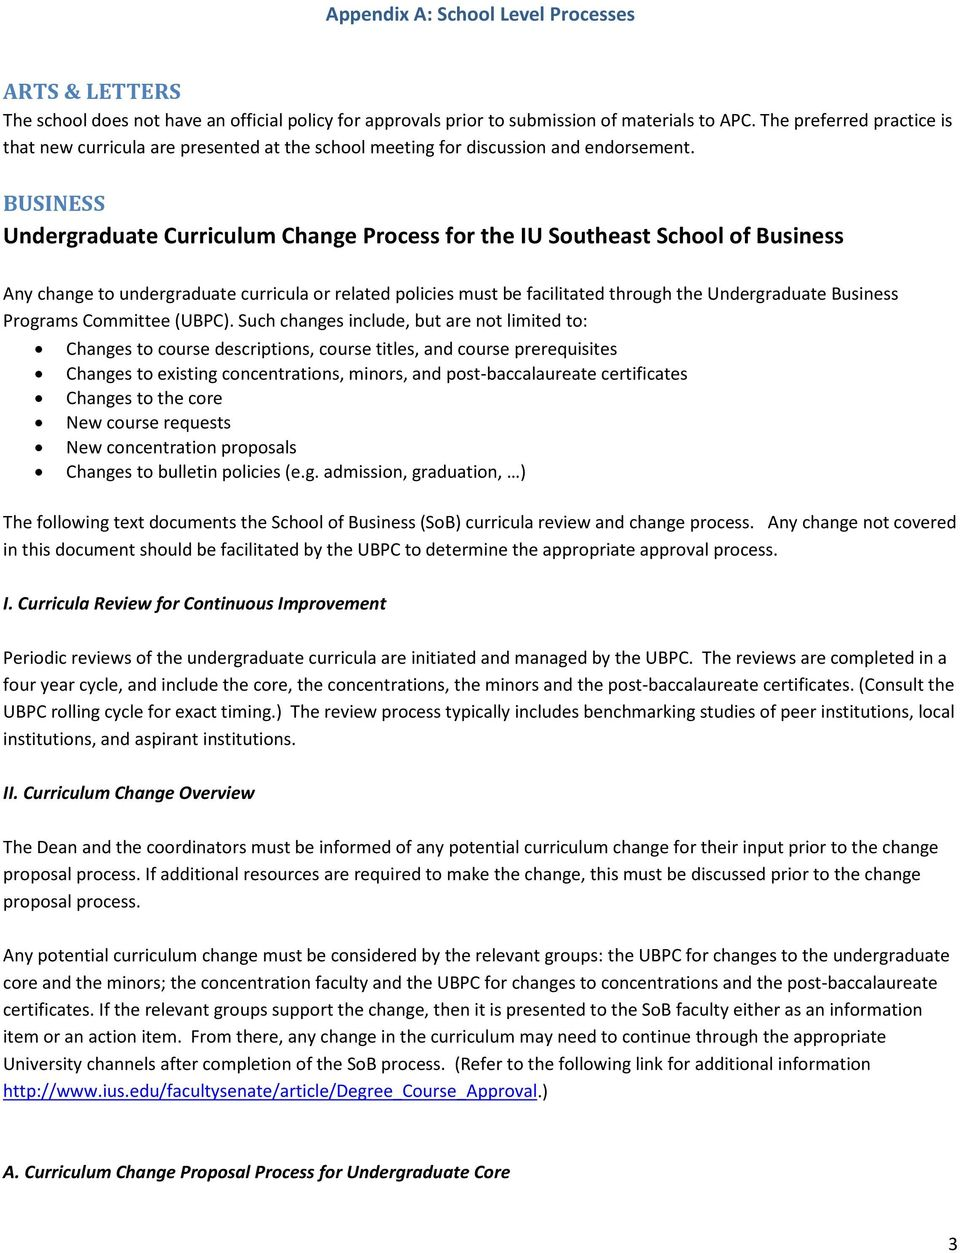 BUSINESS Undergraduate Curriculum Change Process for the IU Southeast School of Business Any change to undergraduate curricula or related policies must be facilitated through the Undergraduate